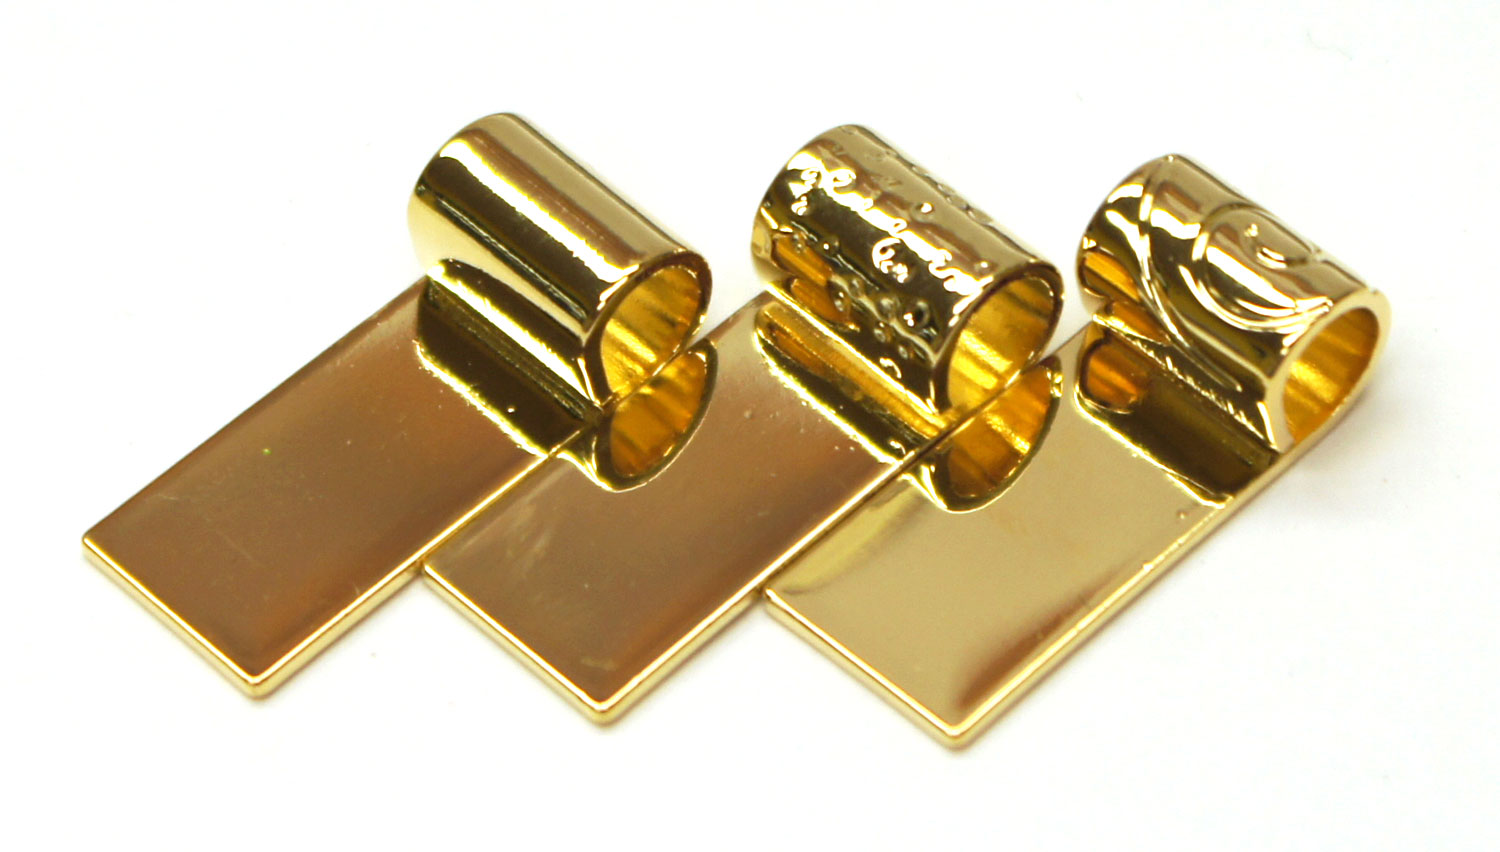 Gold Tube 14k Gold Plated Tube Bail Assortment 10 Pack And